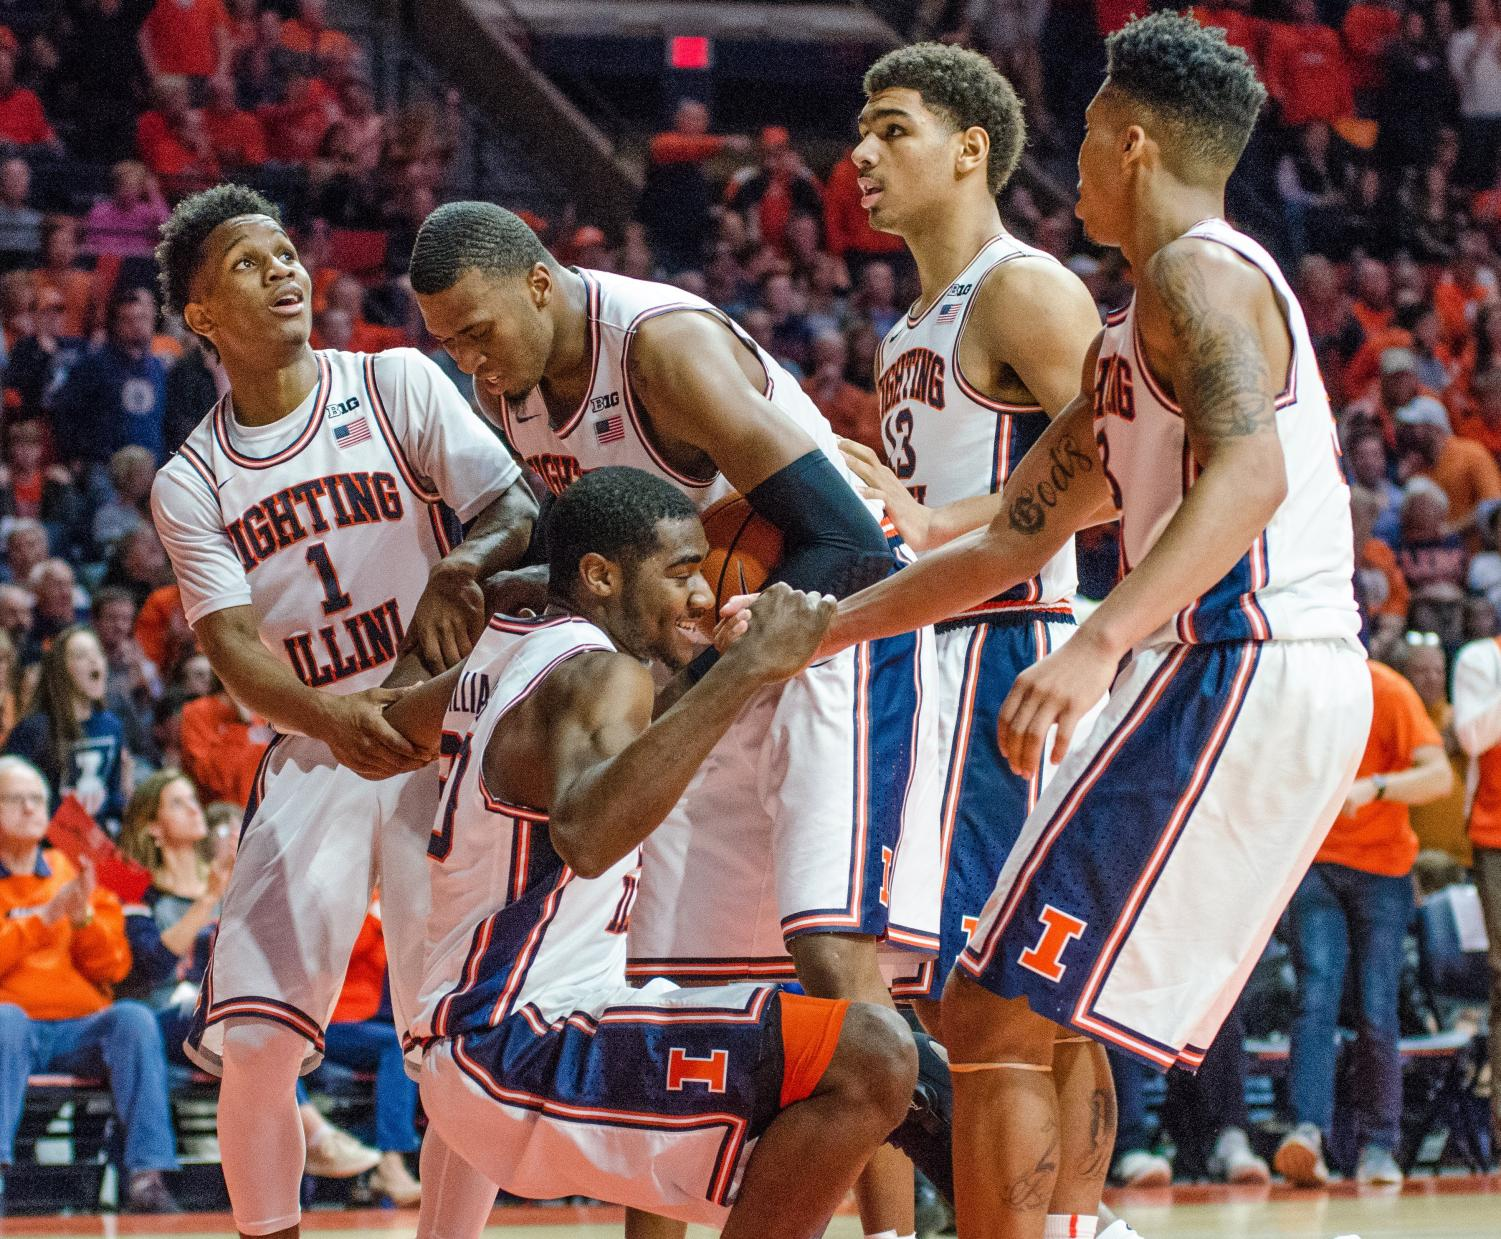 Trent Frazier, Leron Black and Te'Jon Lucas help up teammate Da'Monte Williams during Illinois' 86-93 loss to No. 6 Purdue on Feb. 22.